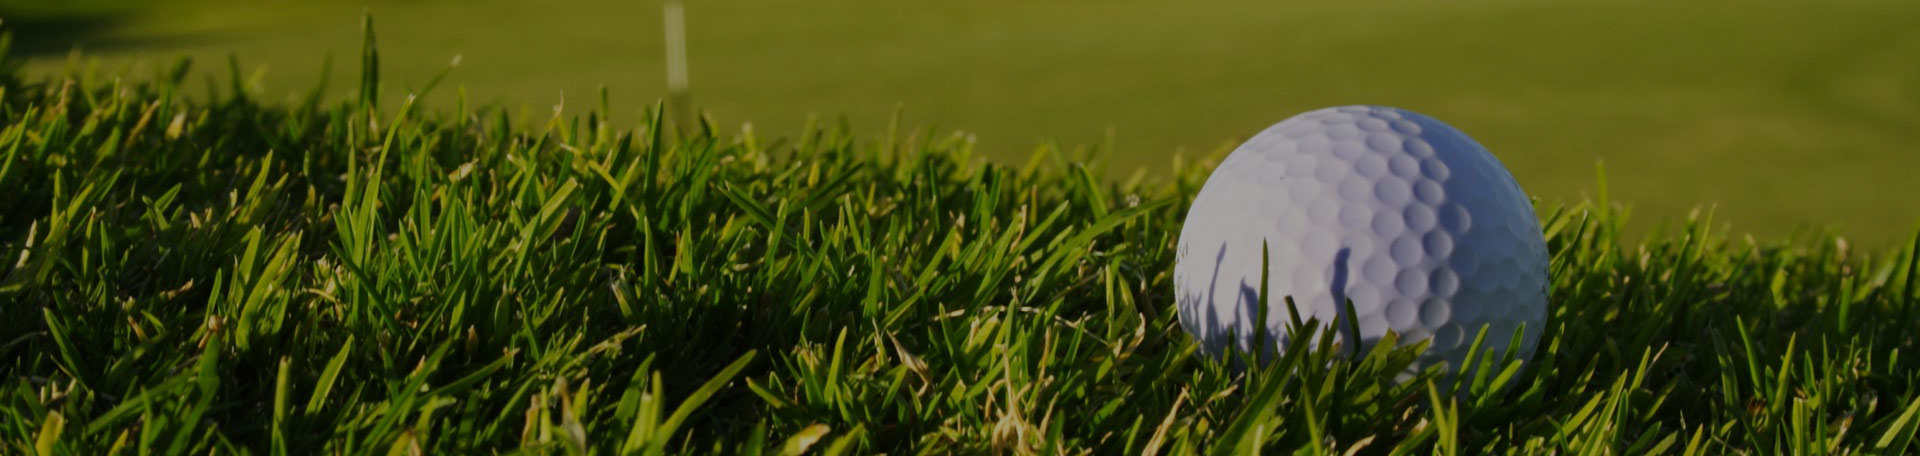 Golf Course Wallpaper 790 876 Hd Wallpapers Sml V2